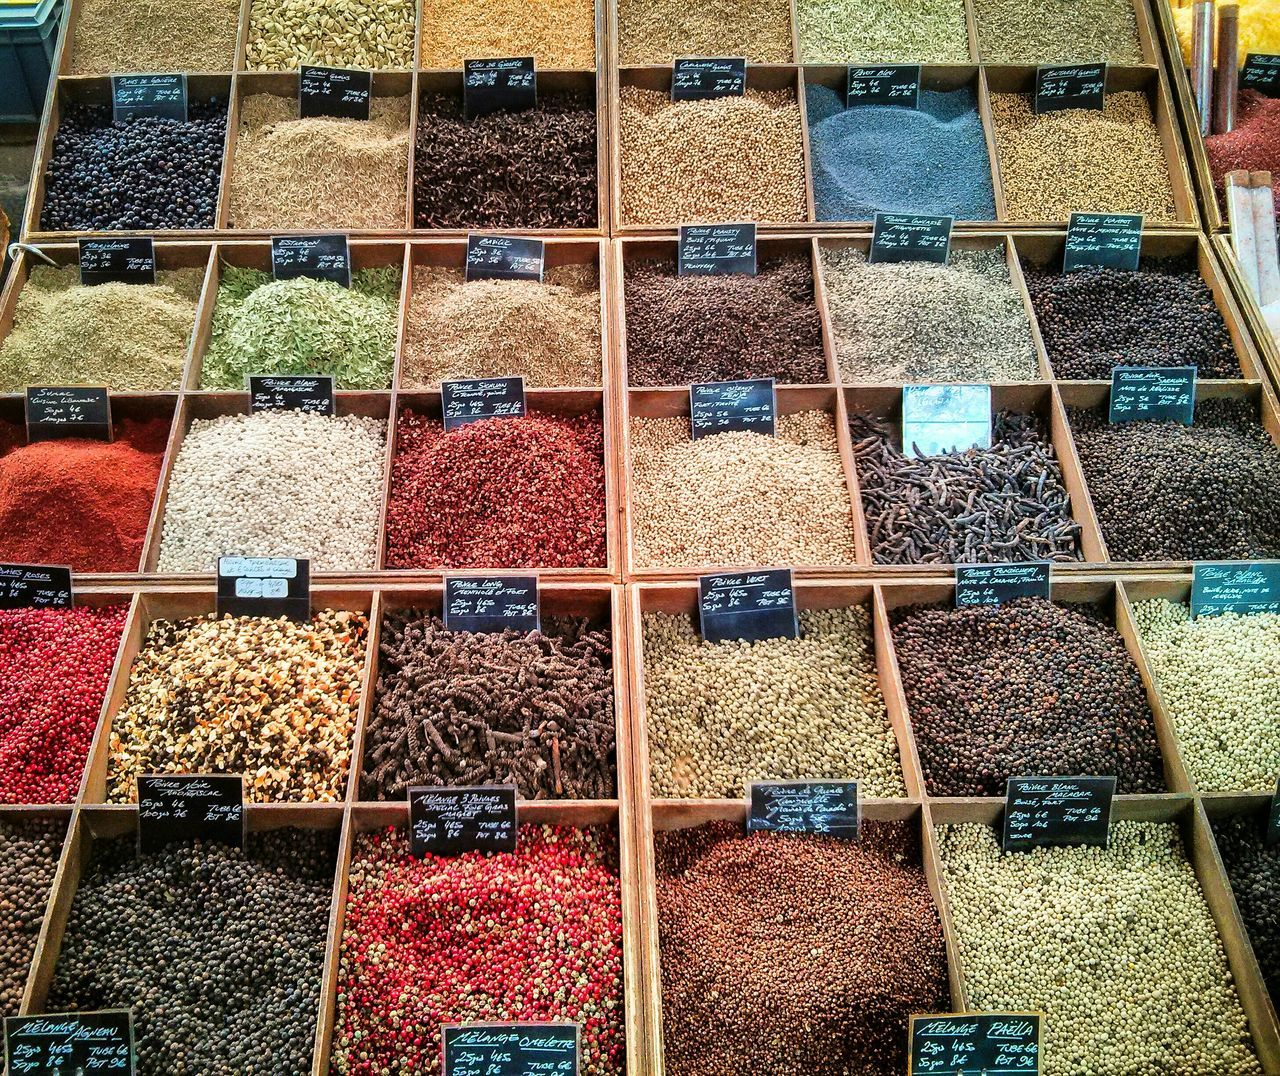 Spices on a Market in France - Marketplace Going To Market Farmers Market Spicy Food Colorful Checkered Street Market Market Colors